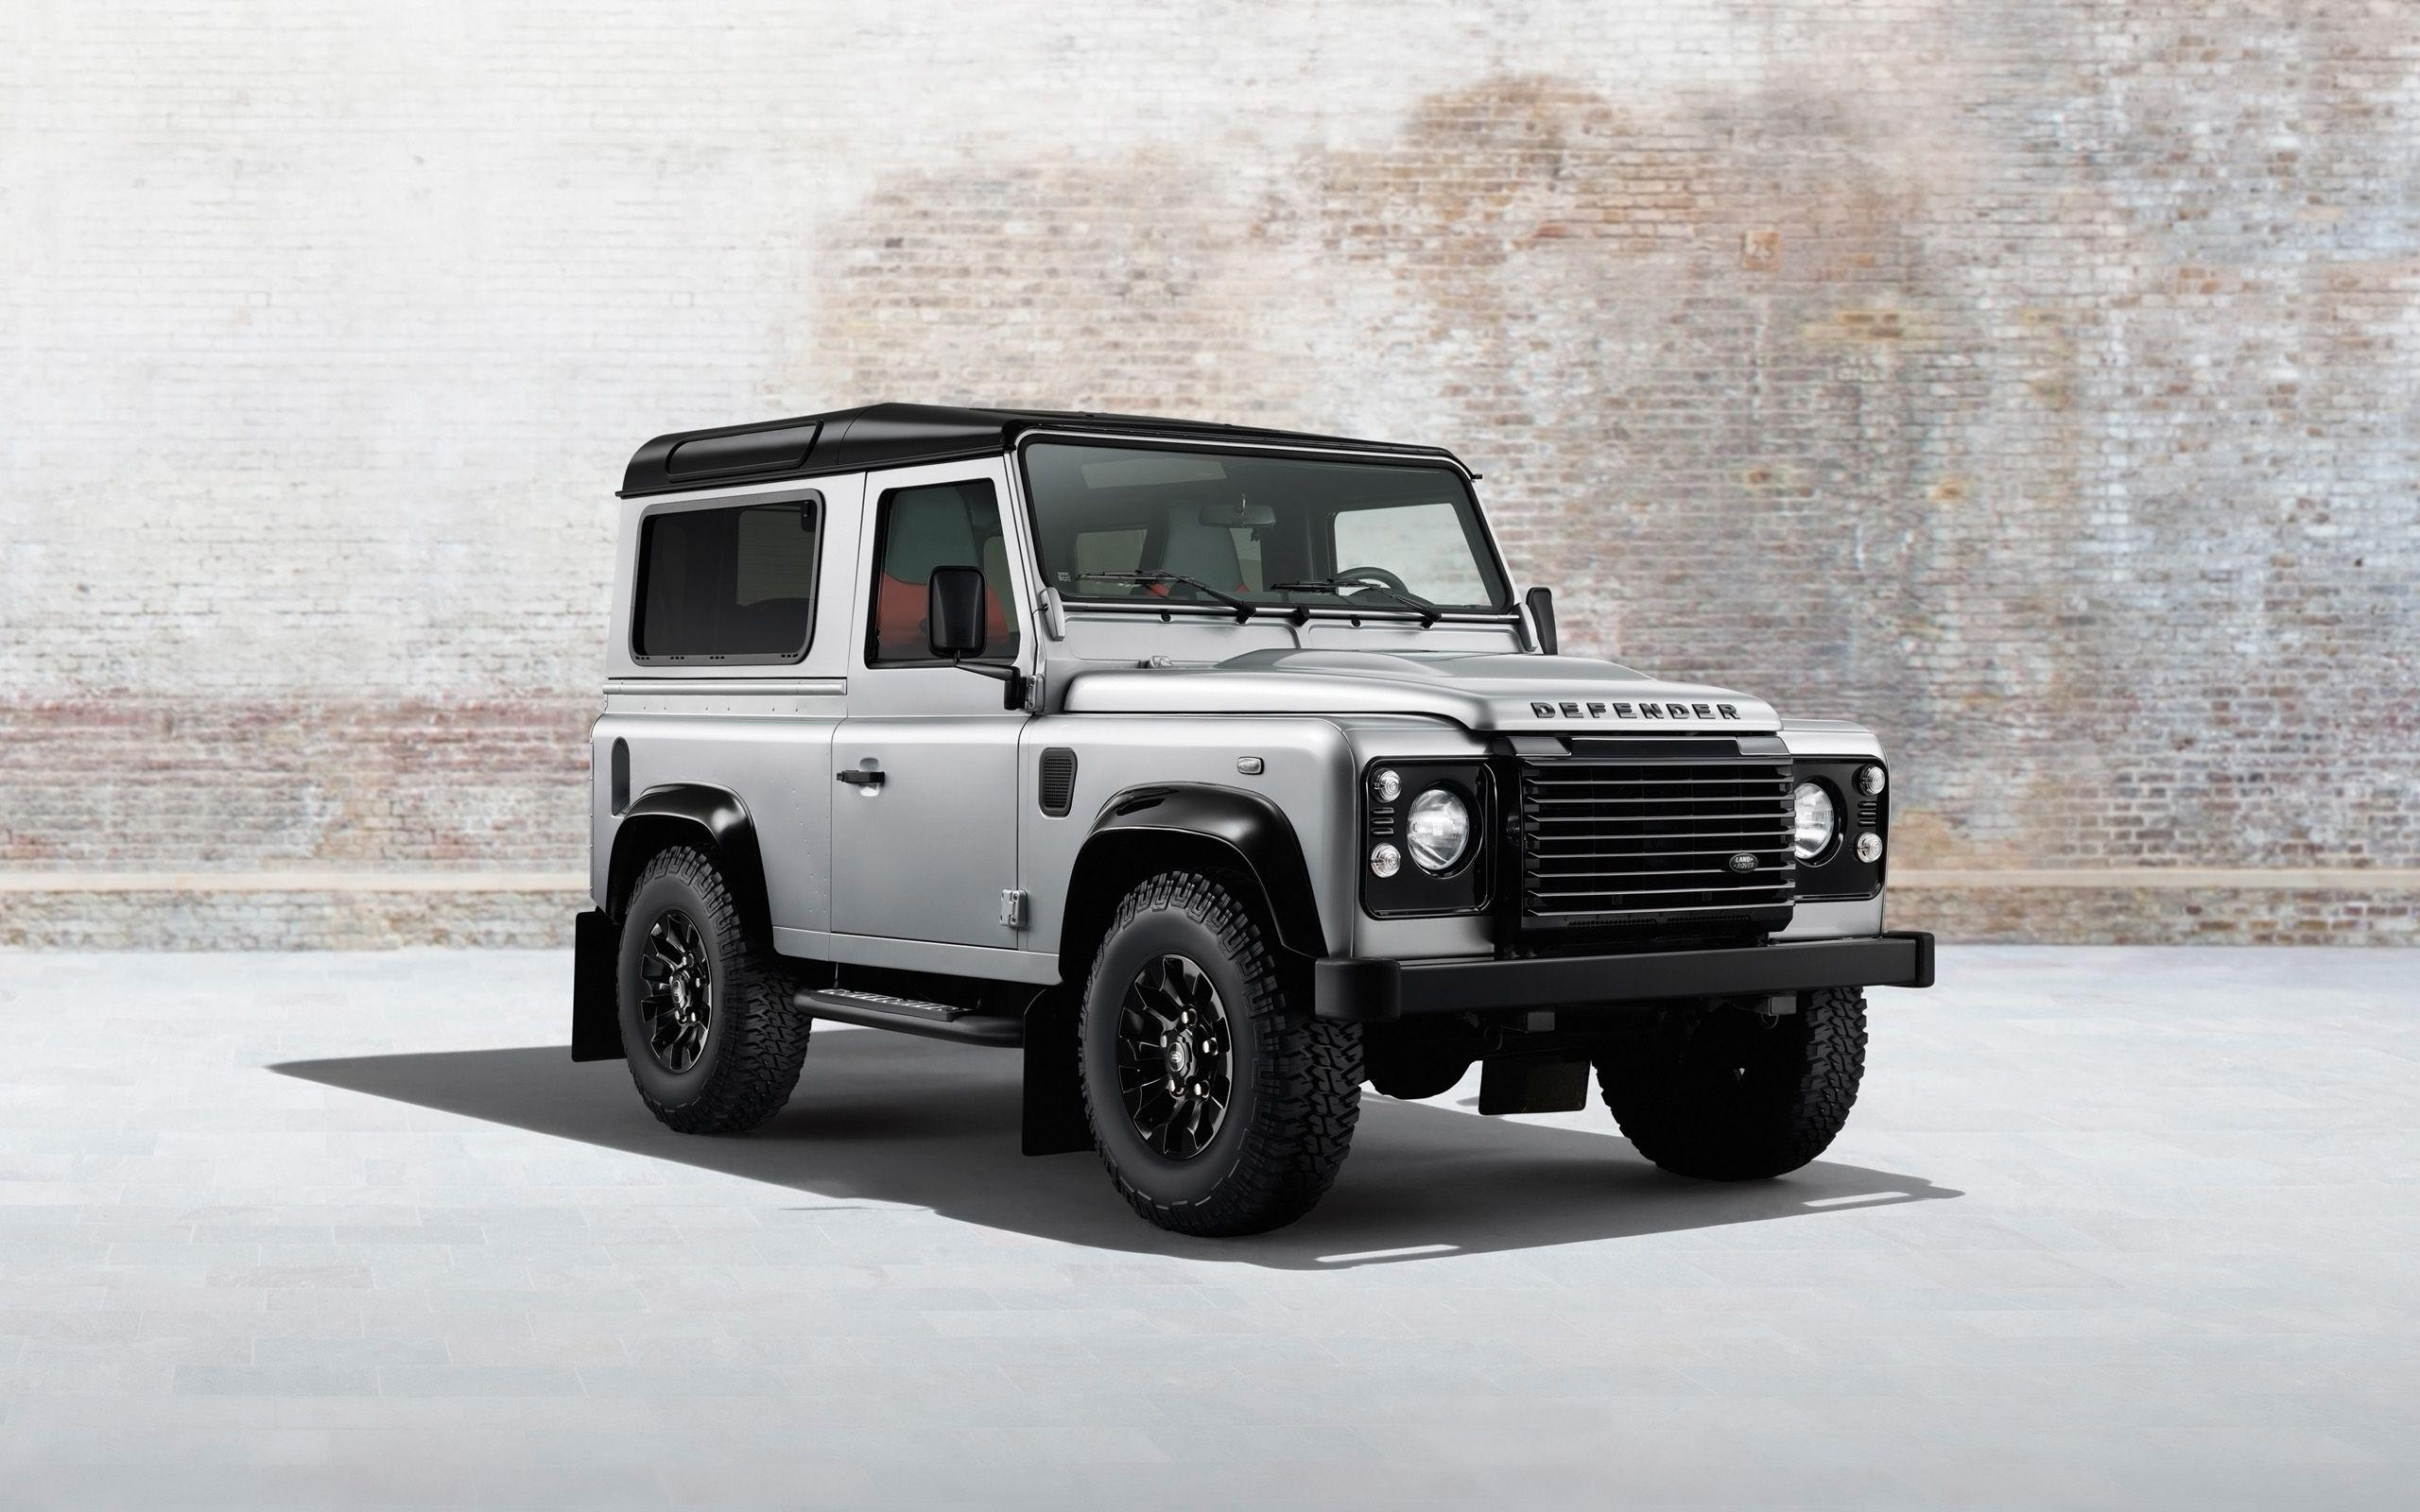 2014 Land Rover Defender Wallpaper | HD Car Wallpapers